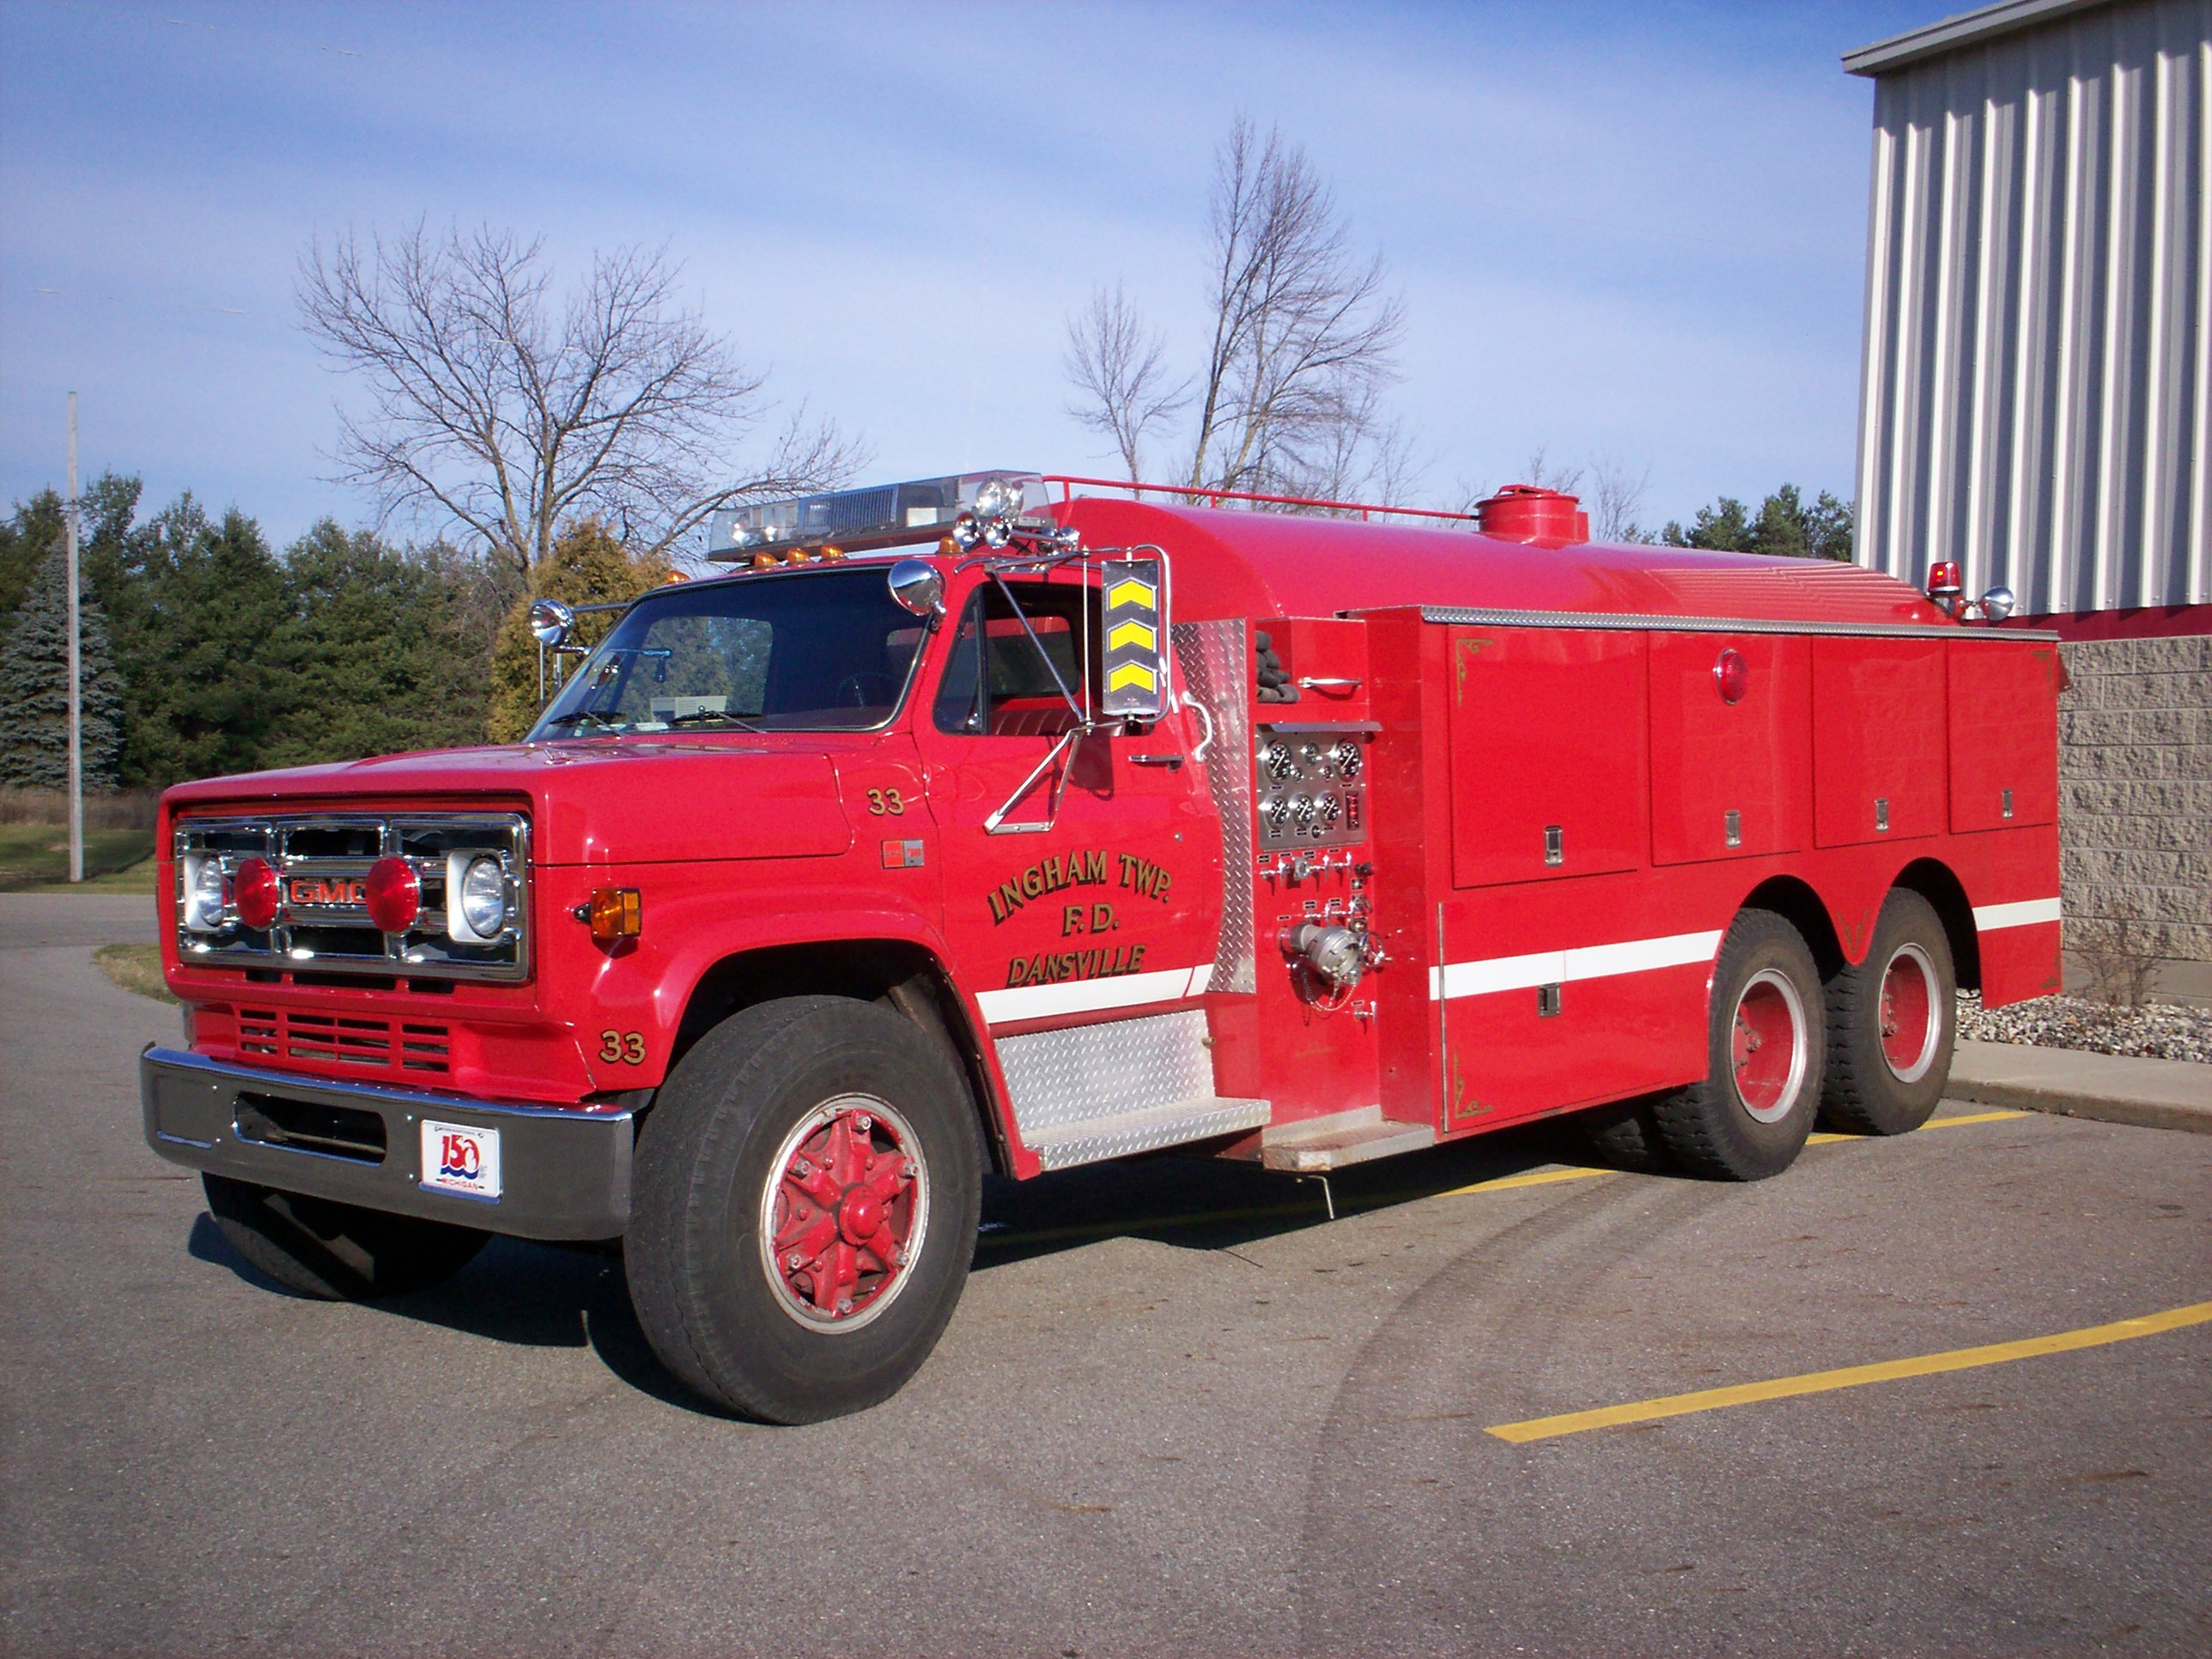 Ingham Township Fire Department | Flickr - Photo Sharing!ingham township